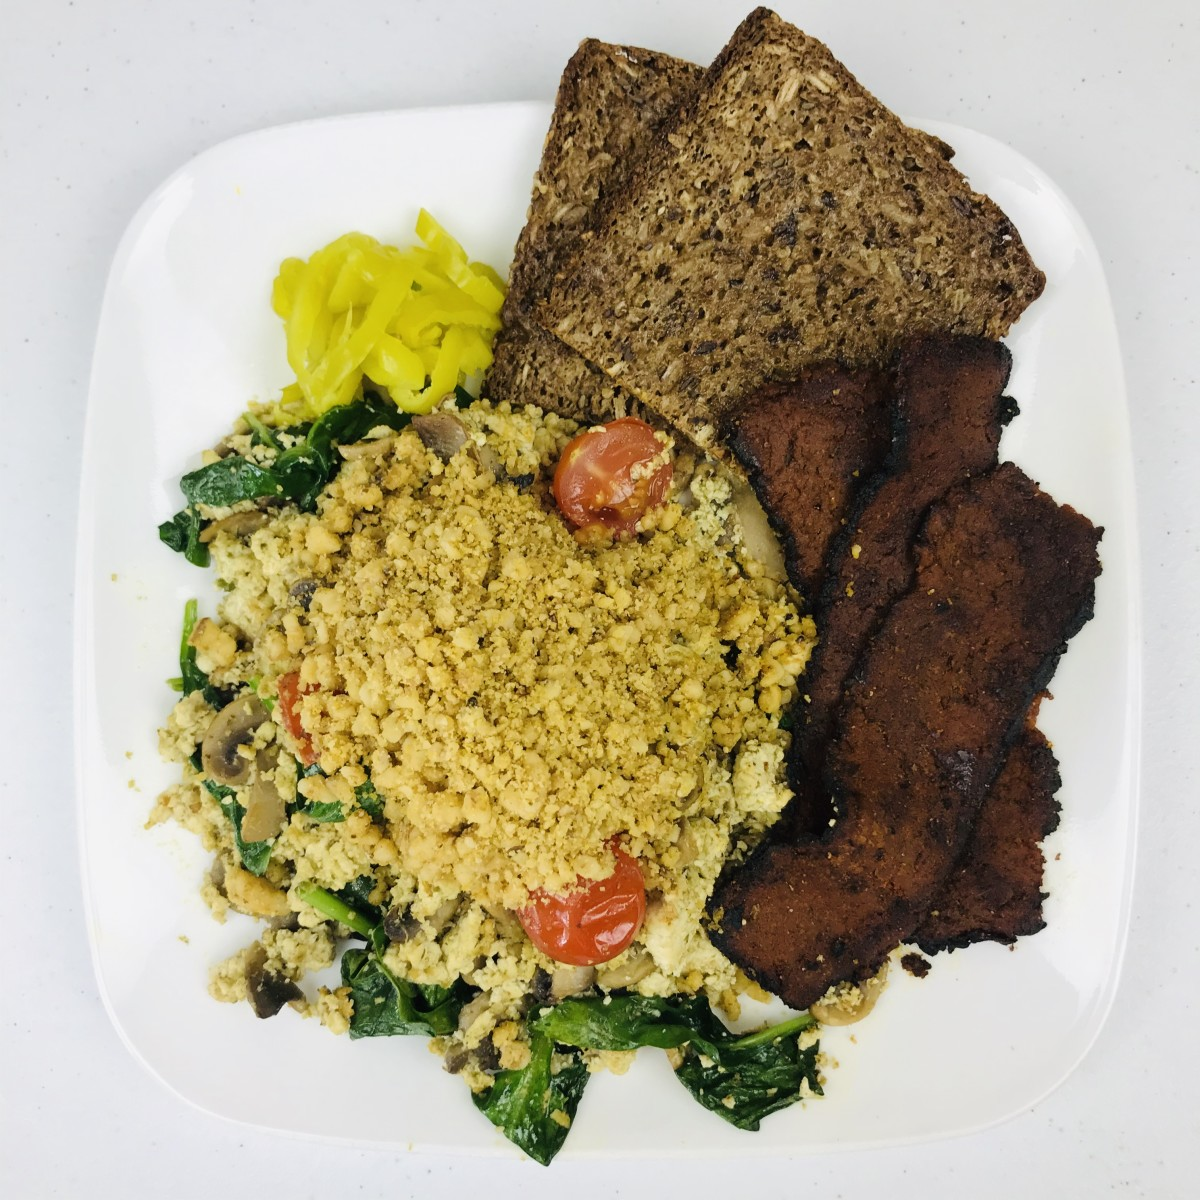 Vegan Breakfast Scramble With Pesto and Walnut Parmesan